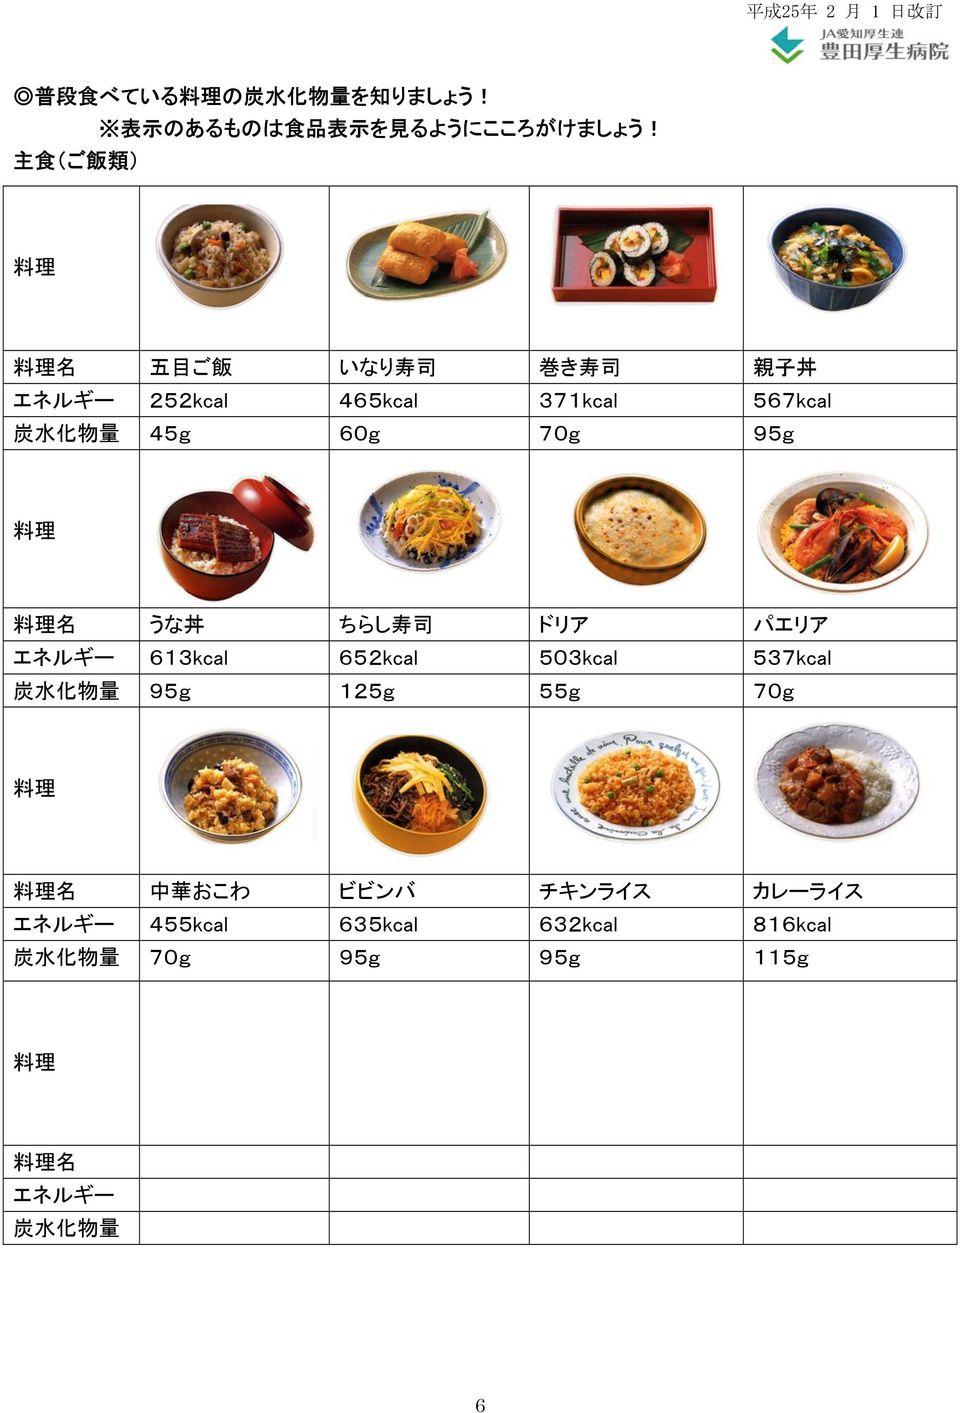 95g 名 うな 丼 ちらし 寿 司 ドリア パエリア 613kcal 652kcal 503kcal 537kcal 95g 125g 55g 70g